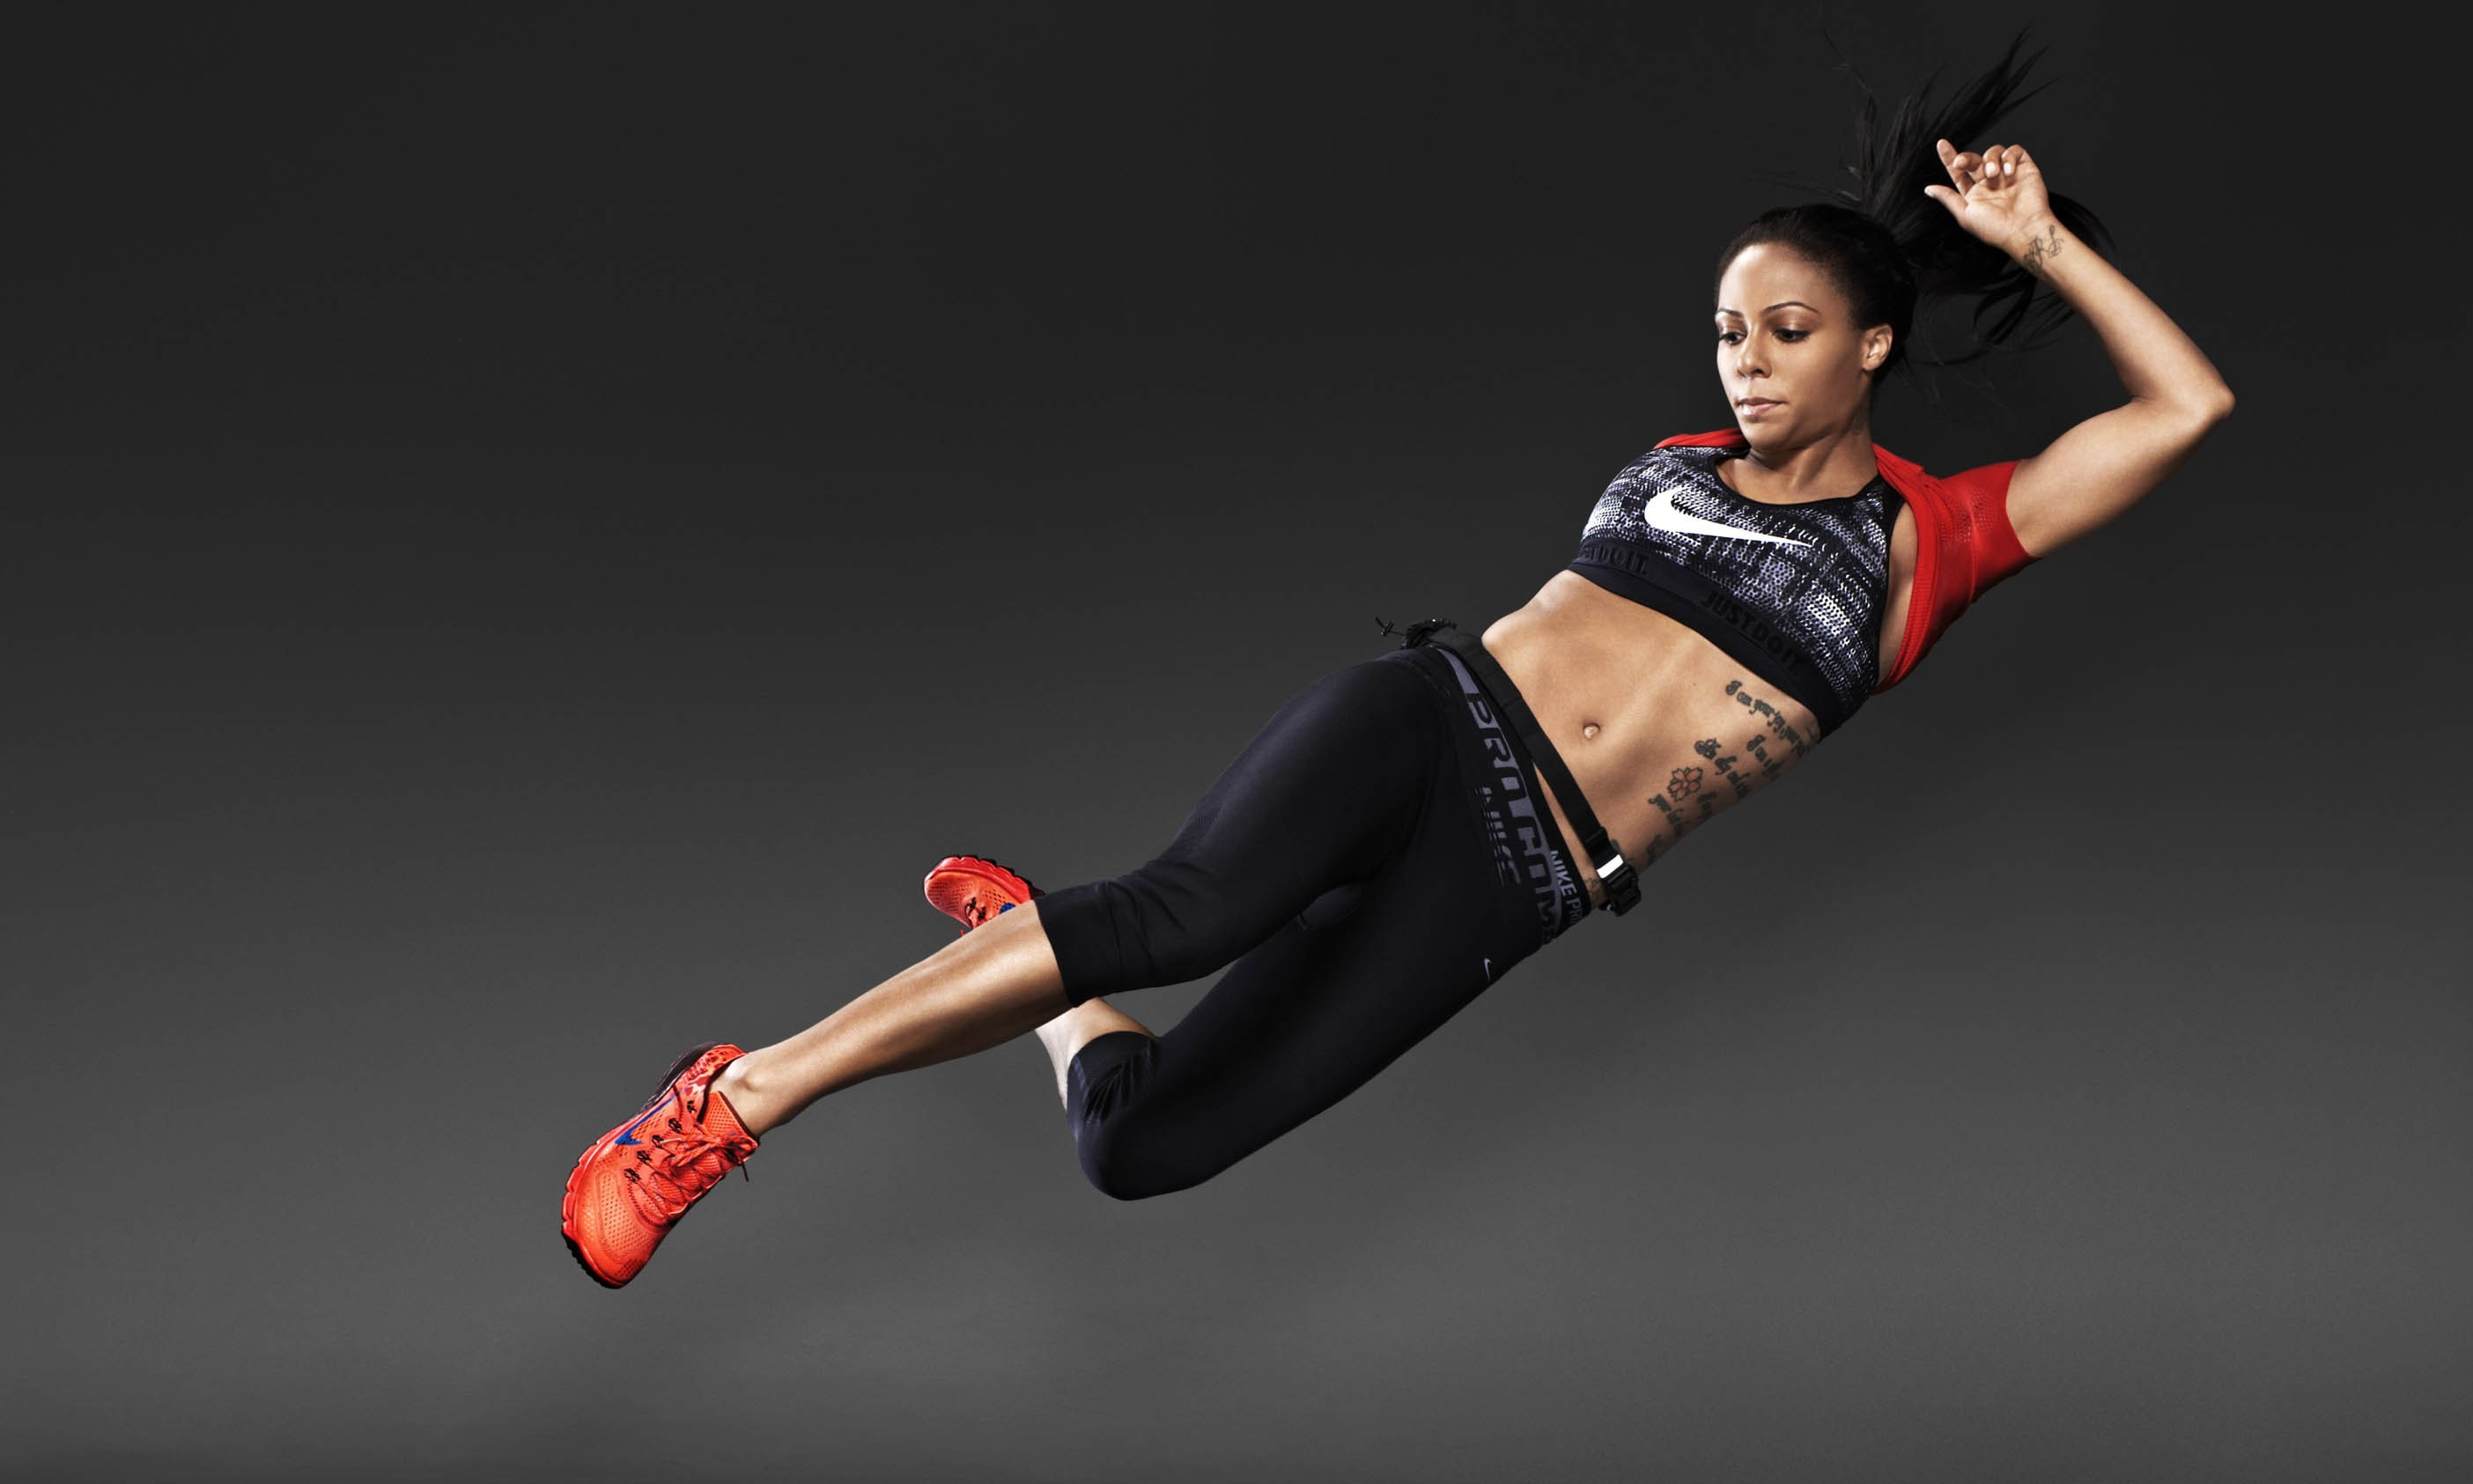 Nike News – Grace, Beauty and Athleticism: Nike Women's Fall/Holiday 2013  Look Book